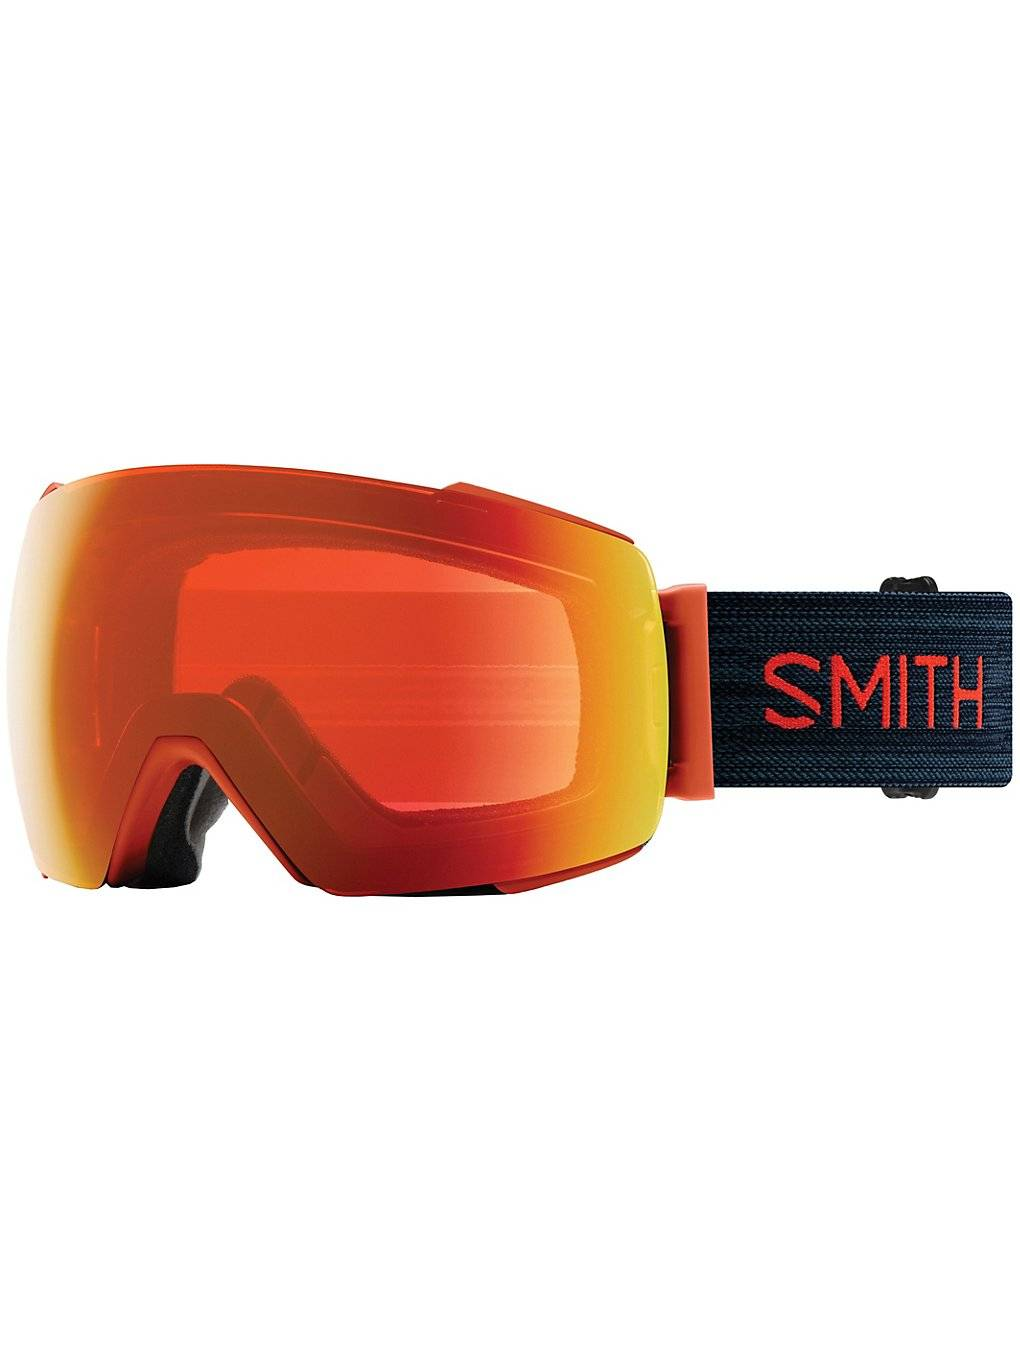 Smith IO Mag Red Rock (+ Bonuslens) punainen